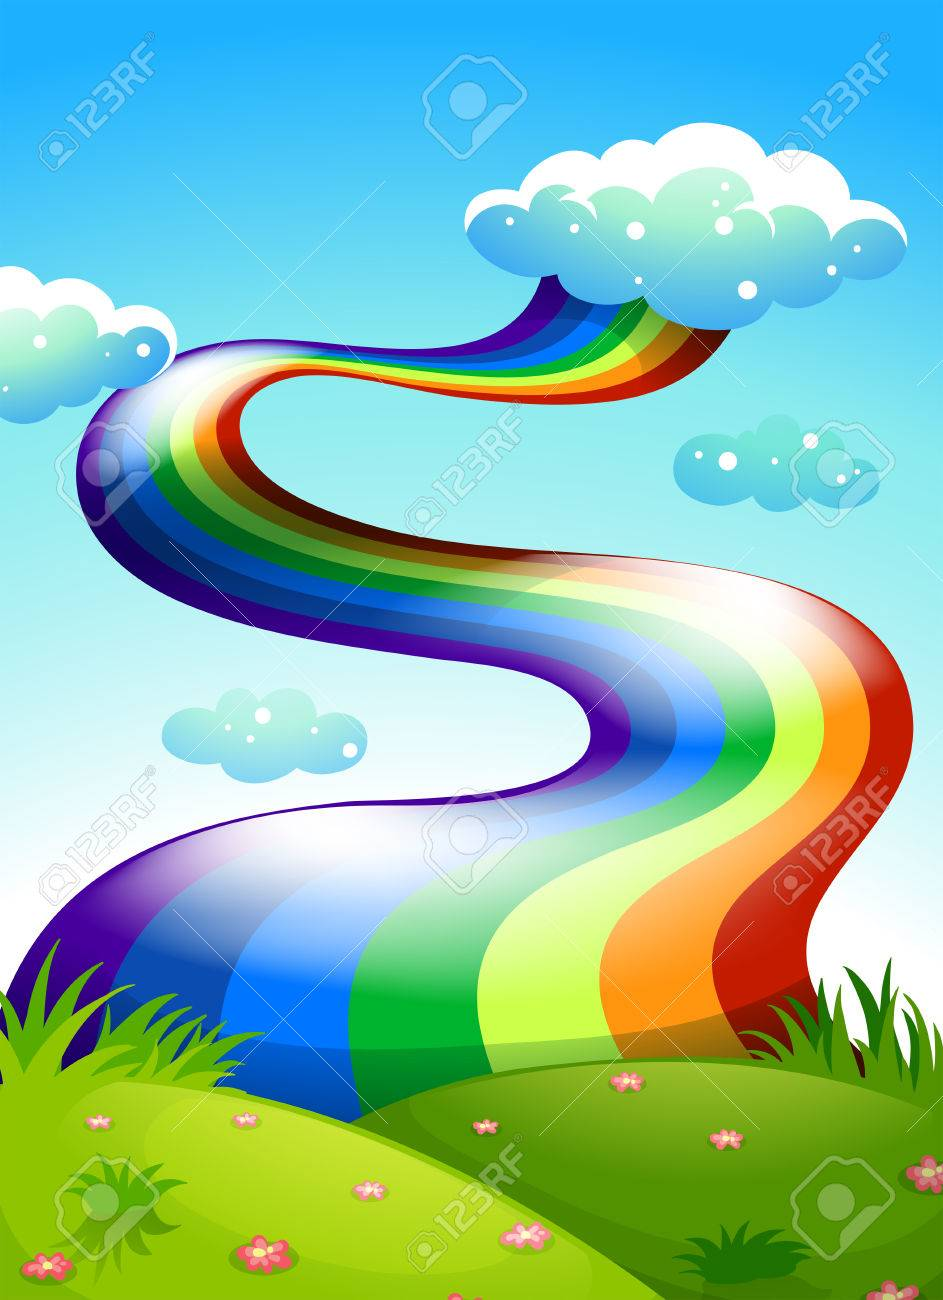 Illustration of a rainbow in the clear blue sky Stock Vector - 25531965